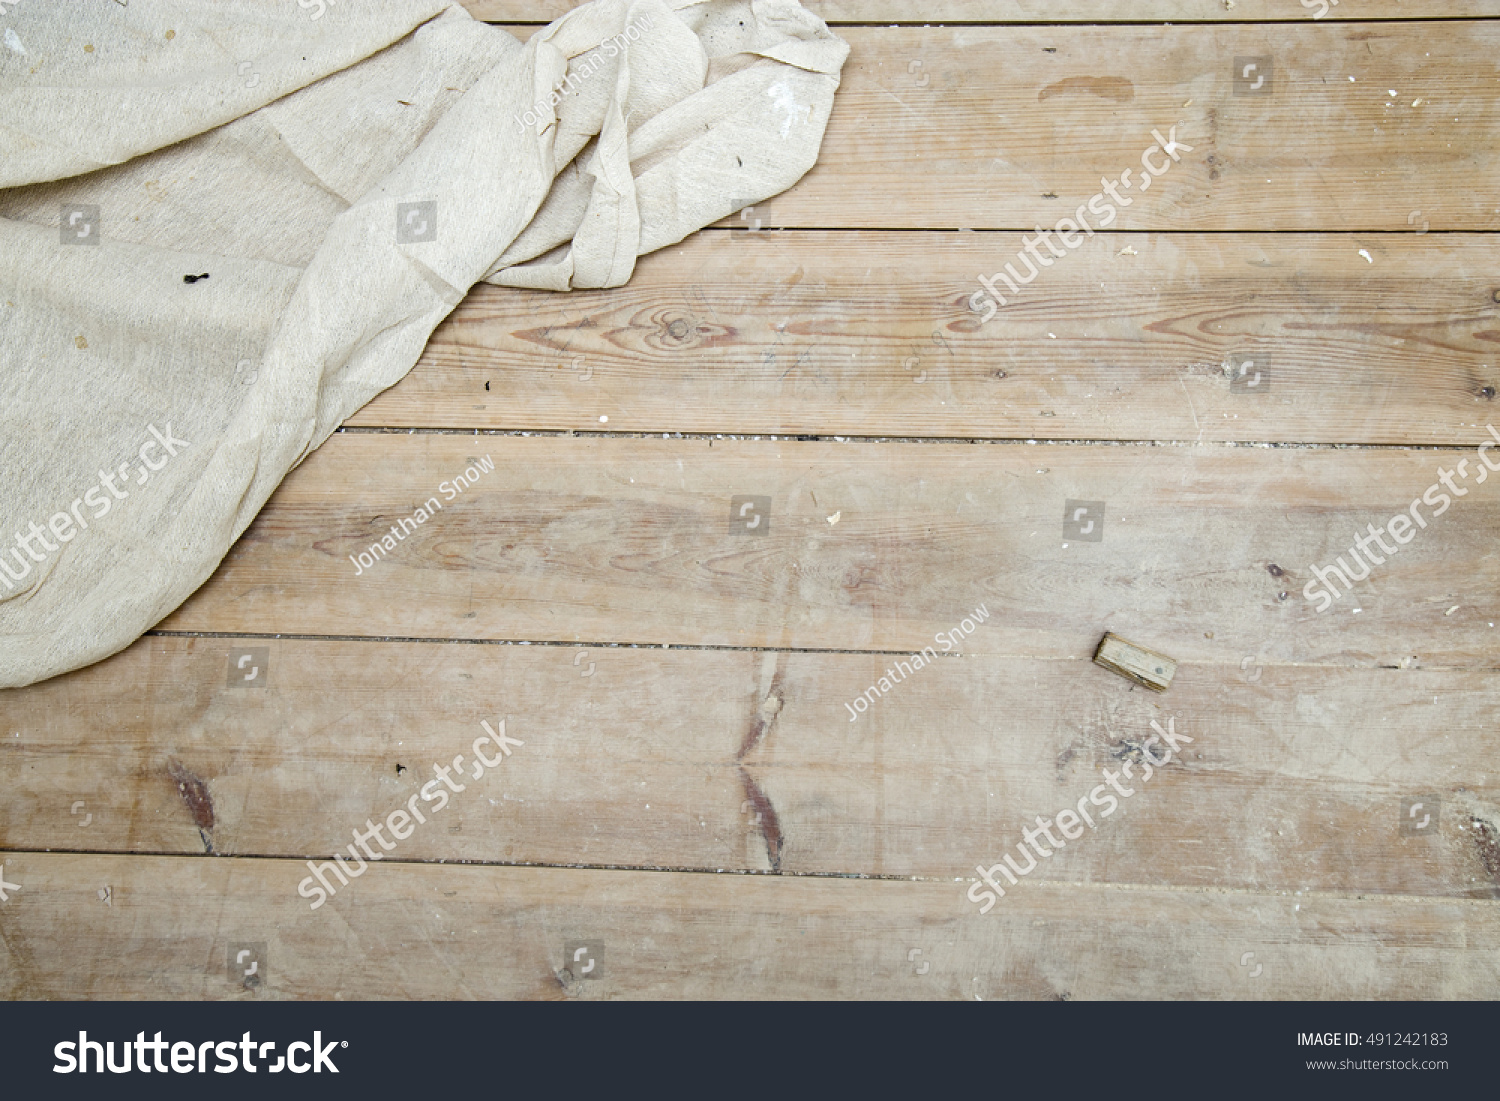 a white fabric dust sheet on an exposed wooden floor